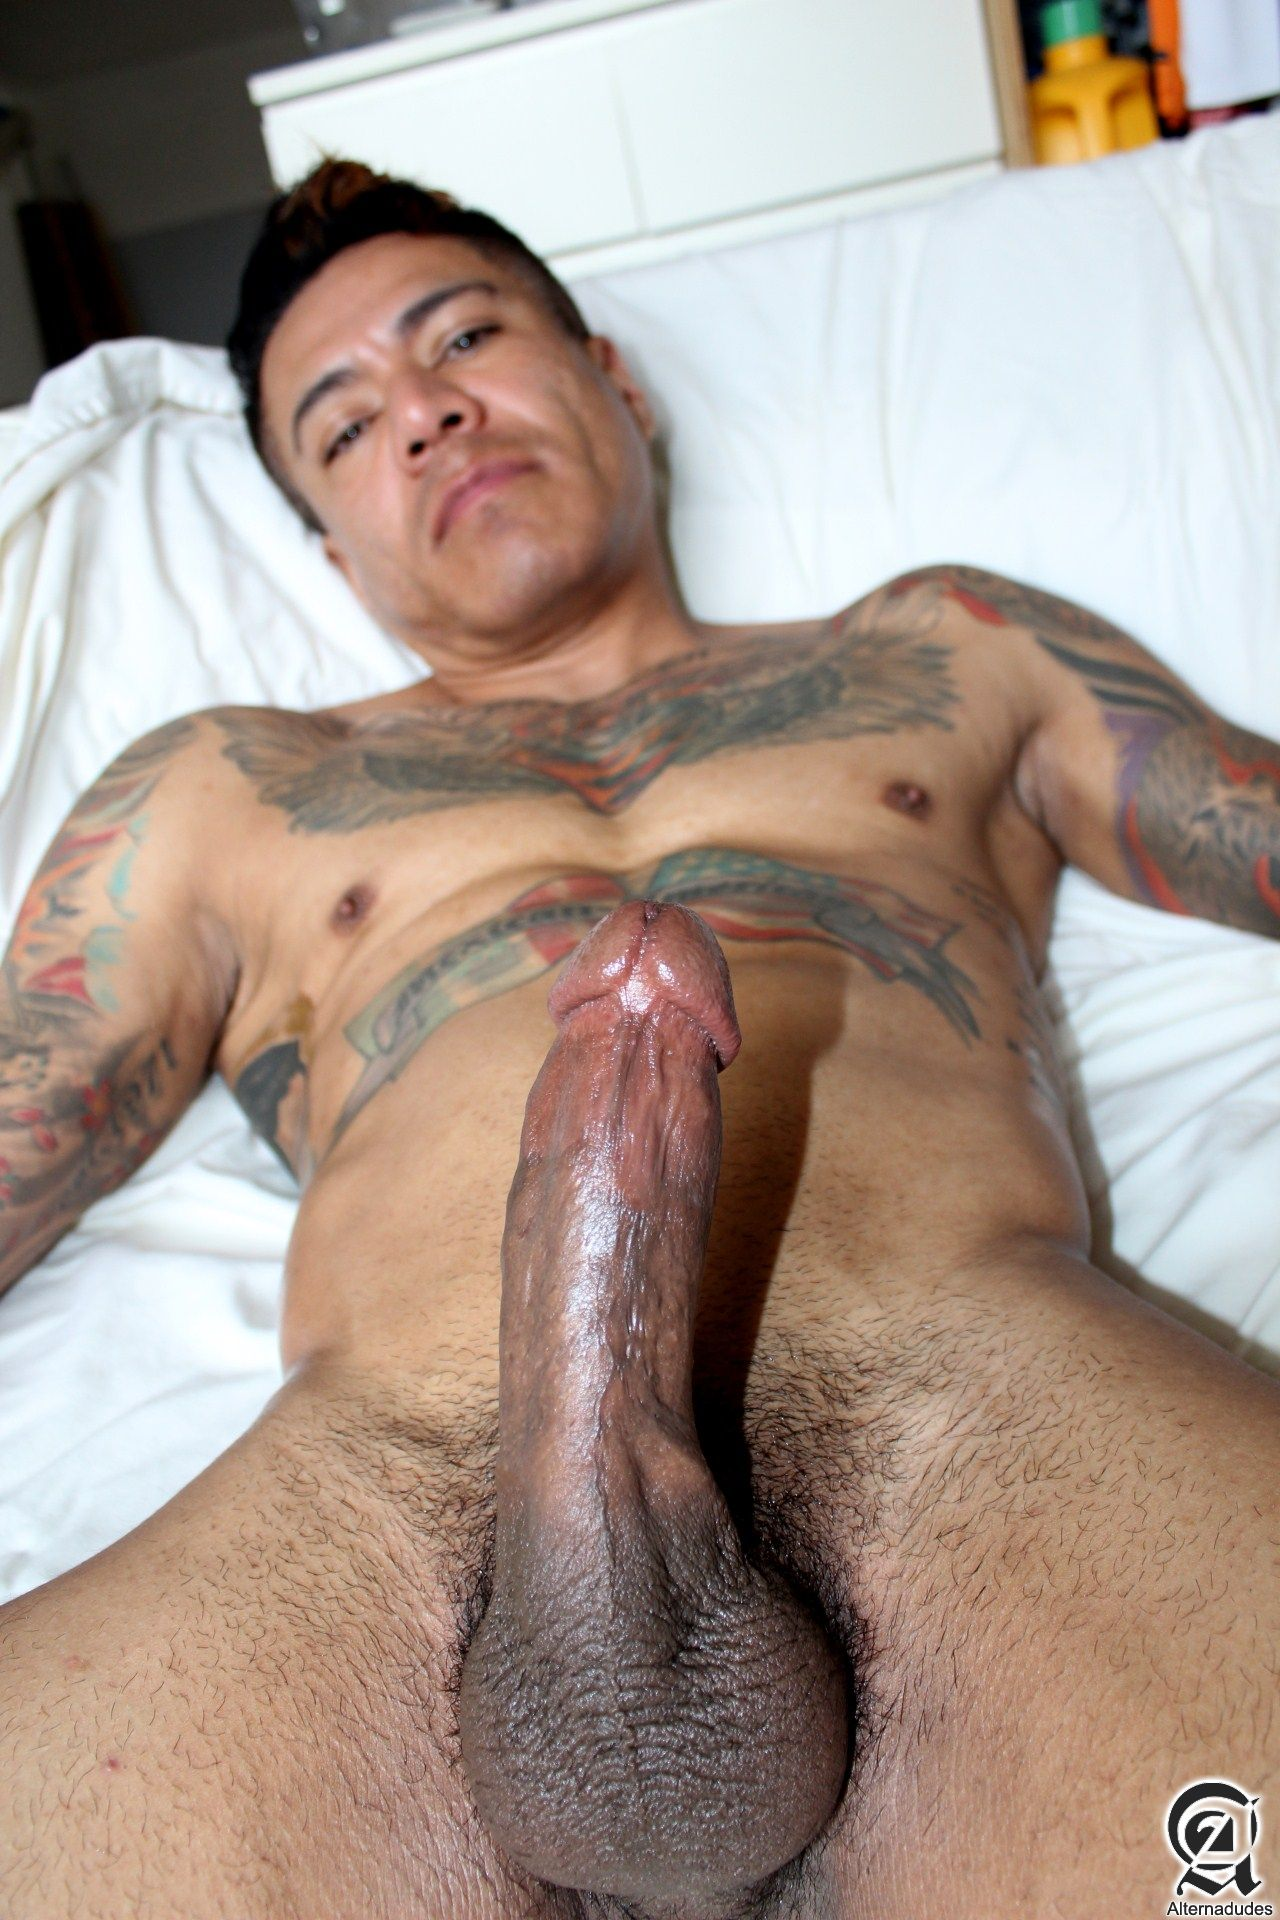 cock gay large latino